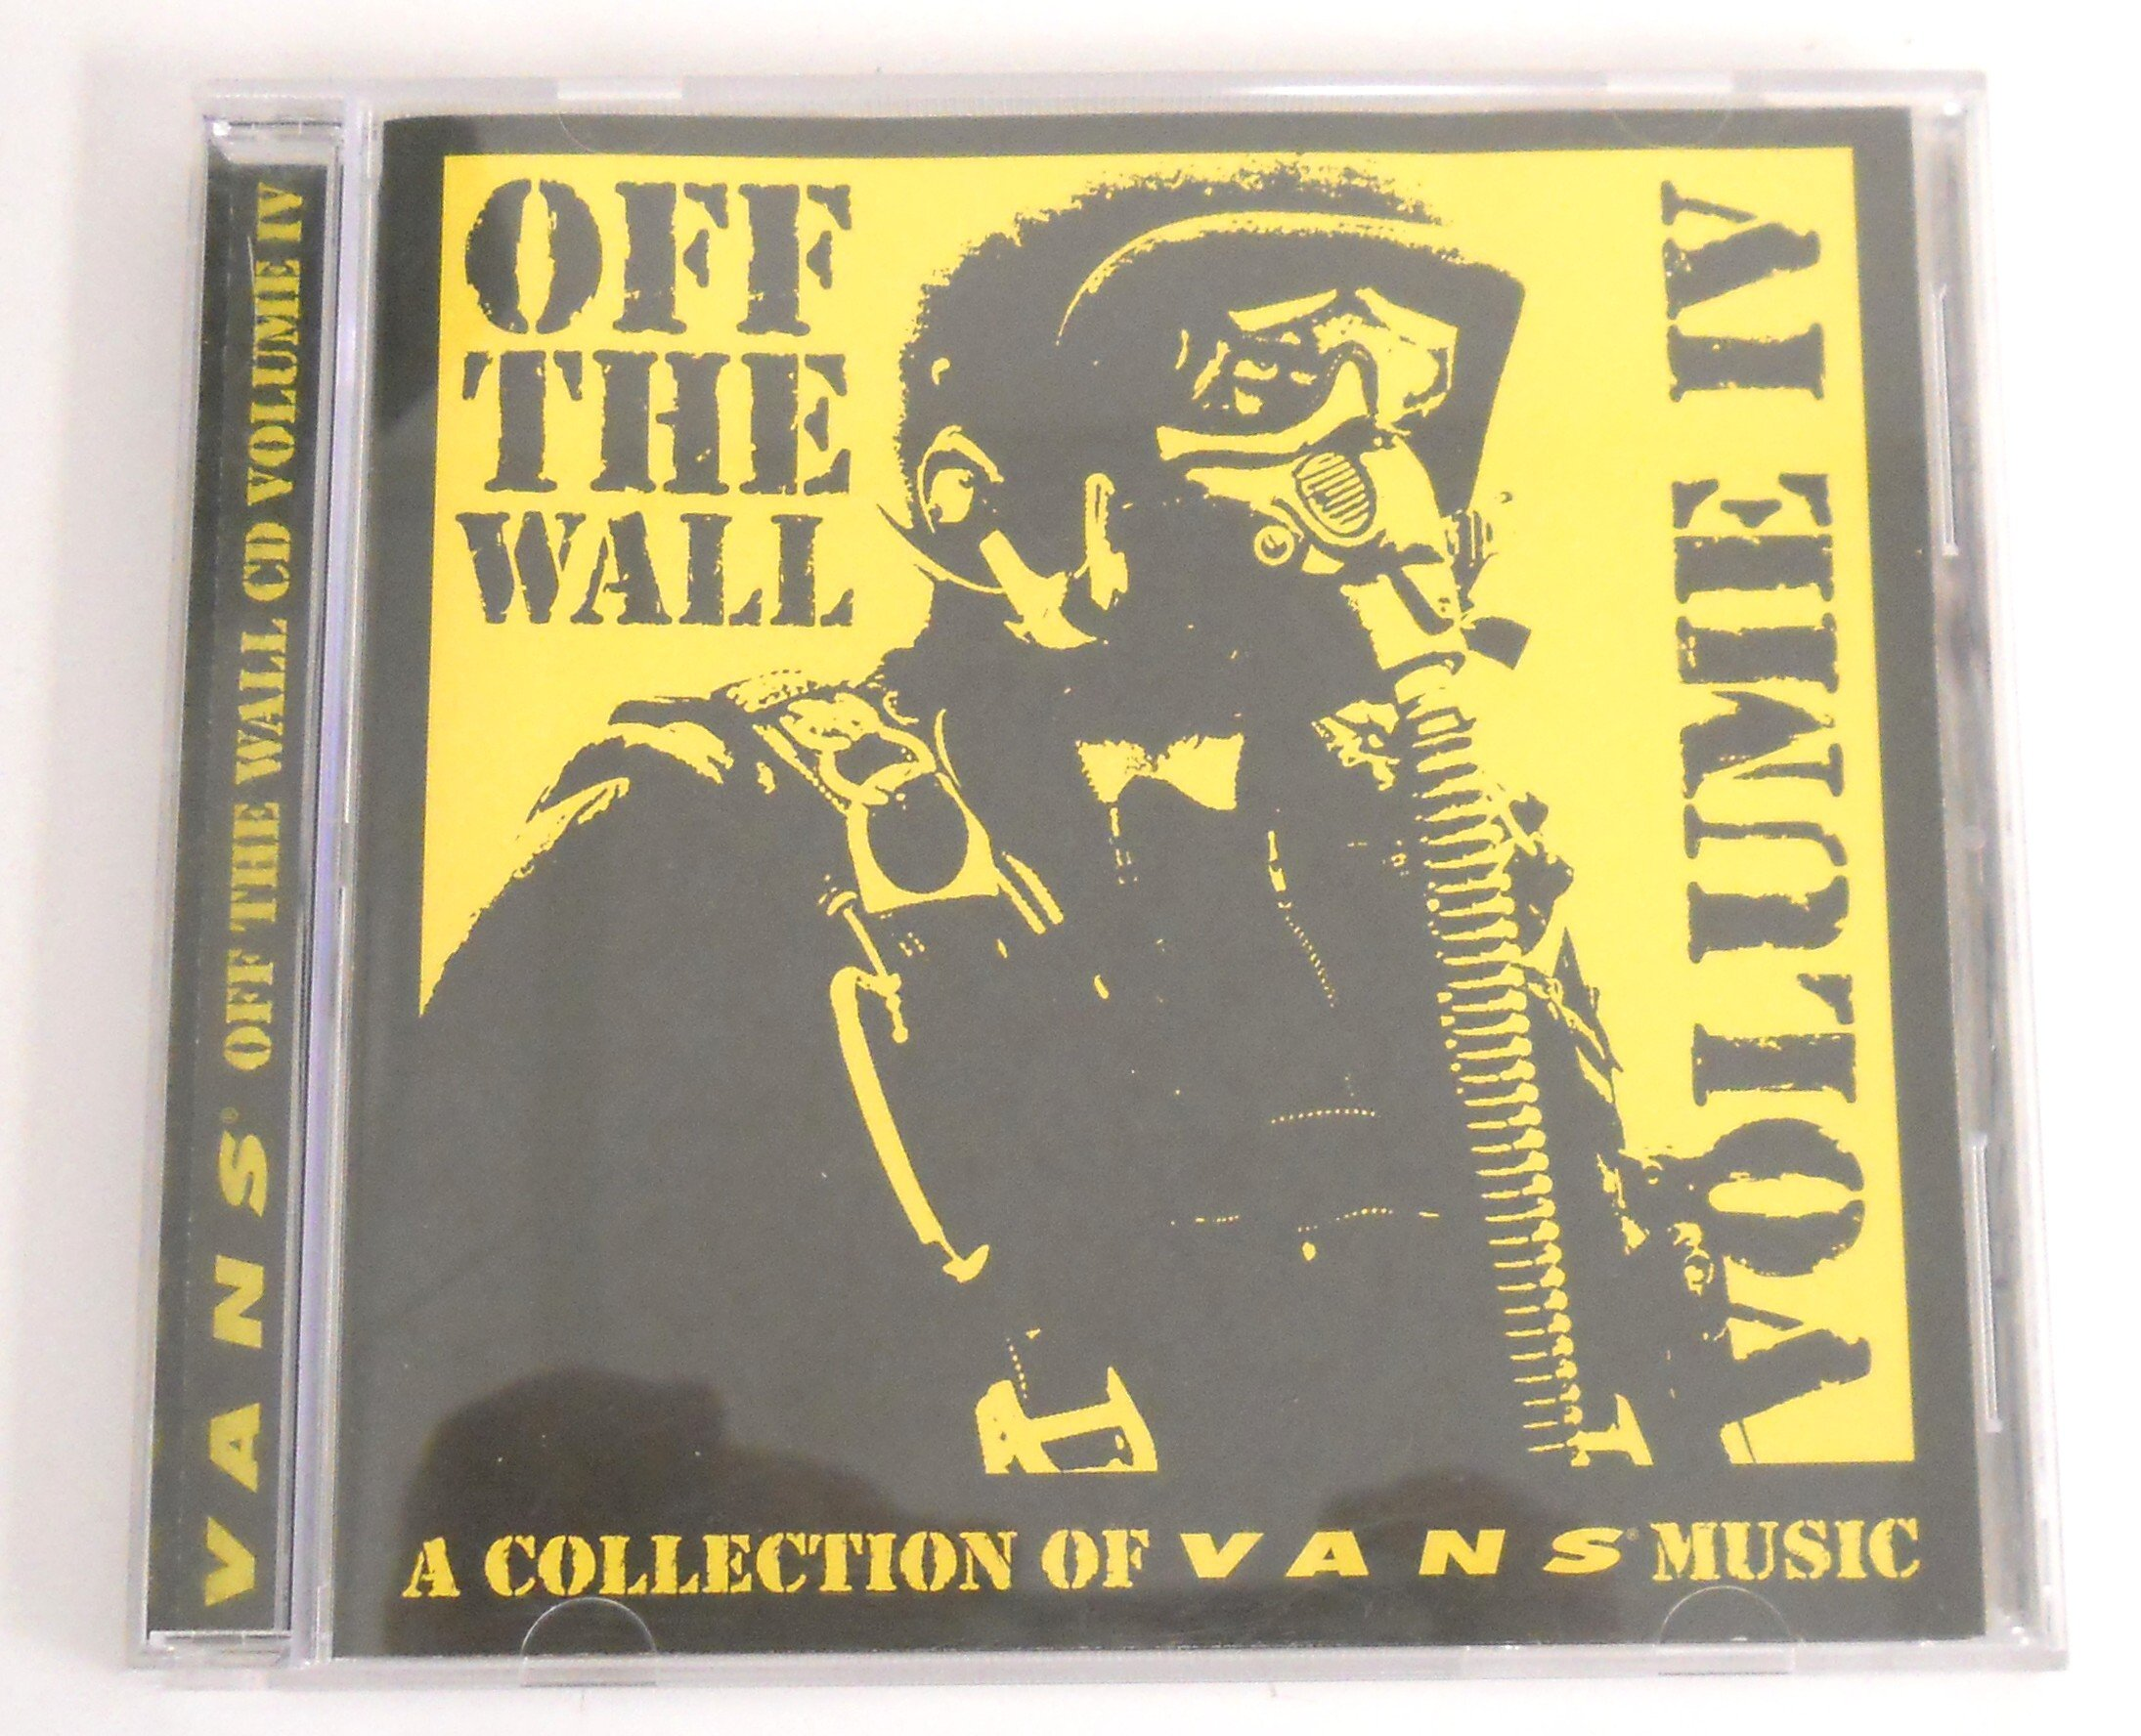 VA – Vans Off The Wall CD Volume IV A Collection Of Vans Music (2001) [FLAC]